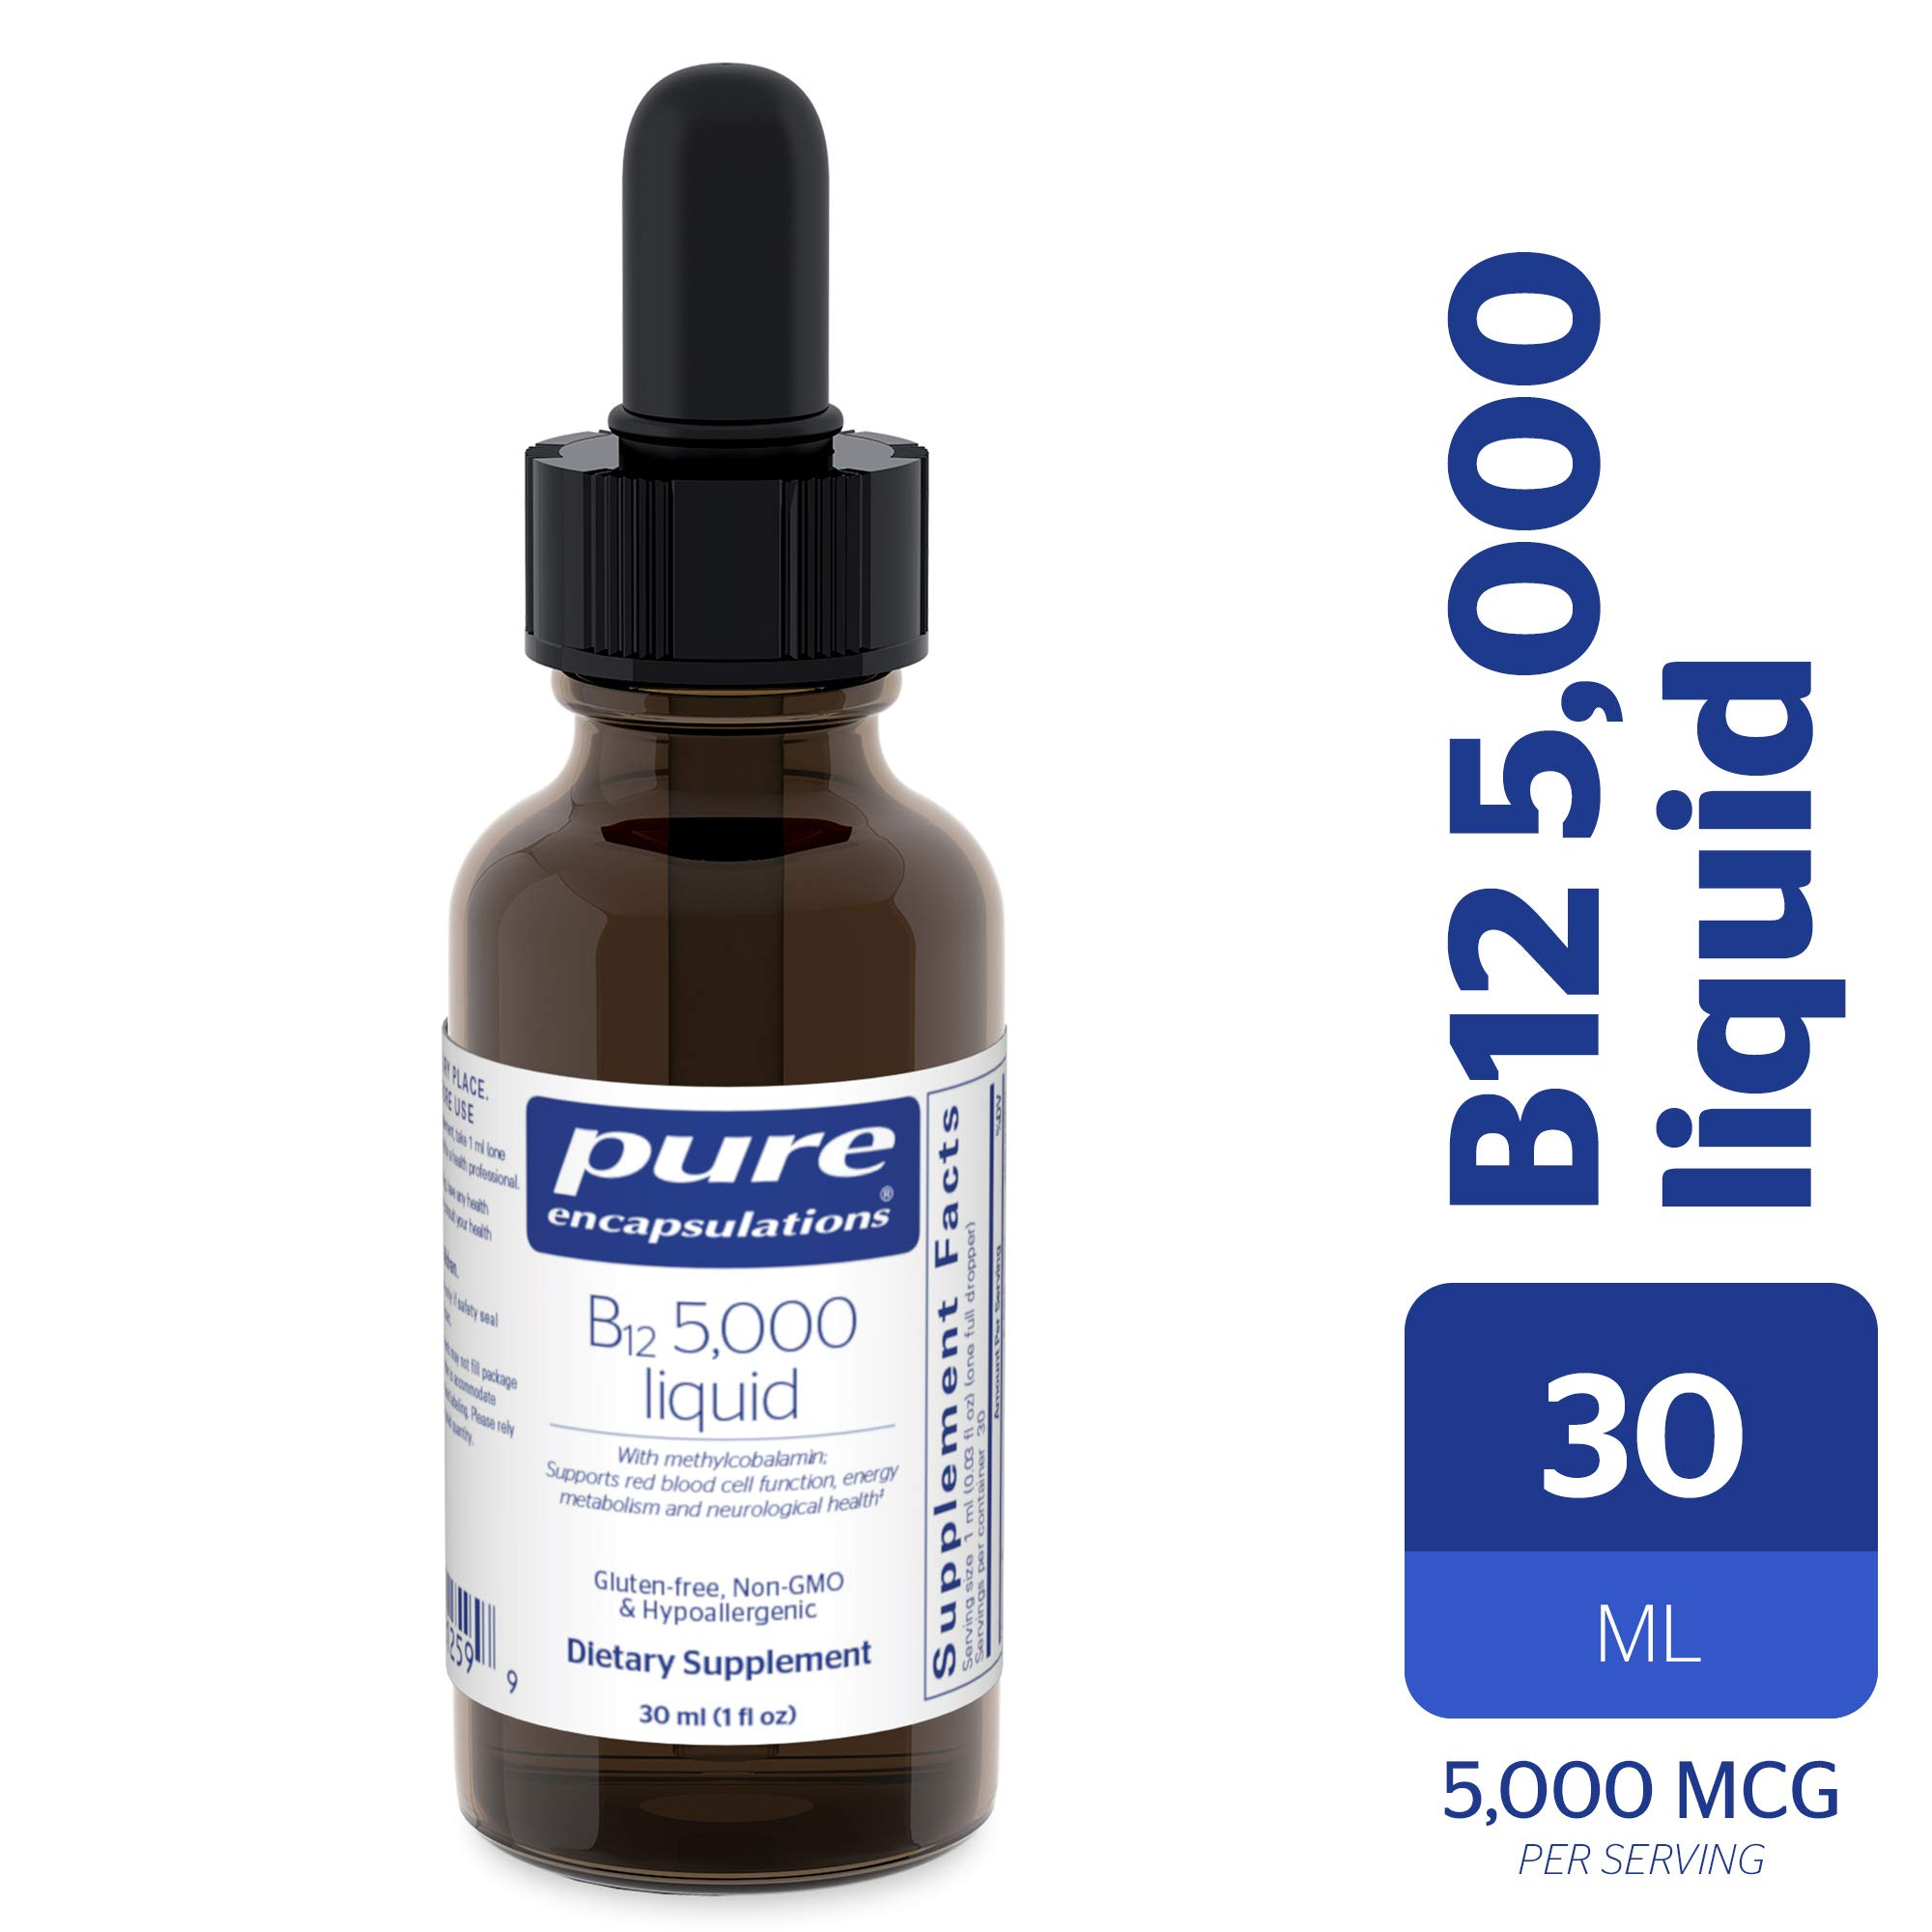 Pure Encapsulations - B12 5000 Liquid - 5,000 mcg Vitamin B12 (Methylcobalamin) Liquid for Nerve Health and Cognitive Function* - 30 ml by Pure Encapsulations